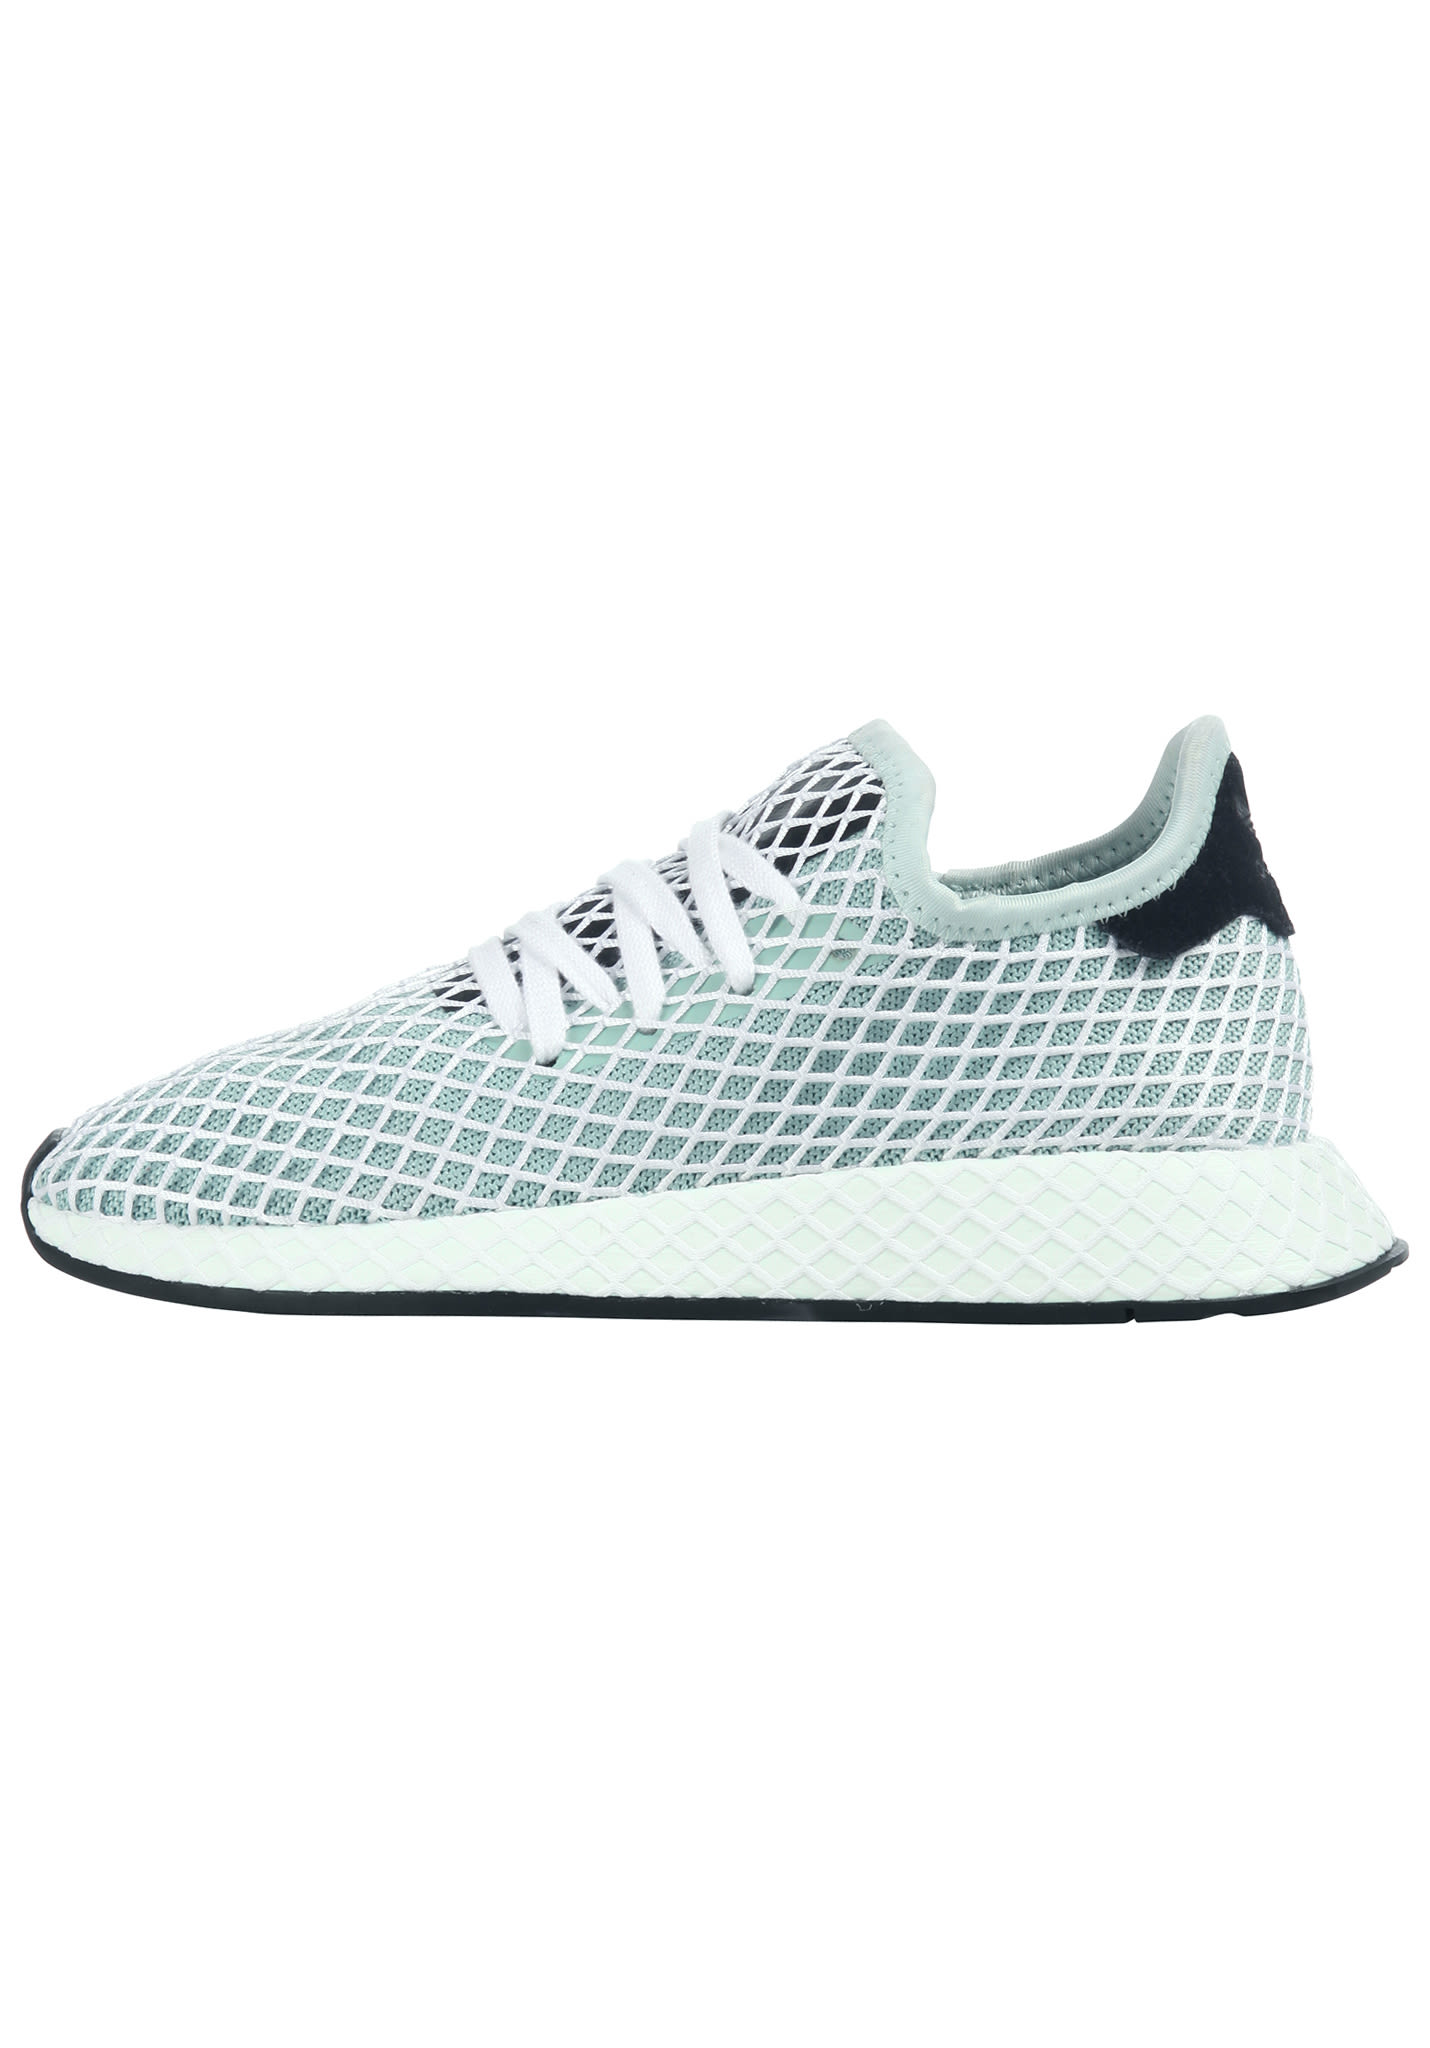 8f9aab394f6b2 ADIDAS ORIGINALS Deerupt Runner - Sneakers for Women - Green ...